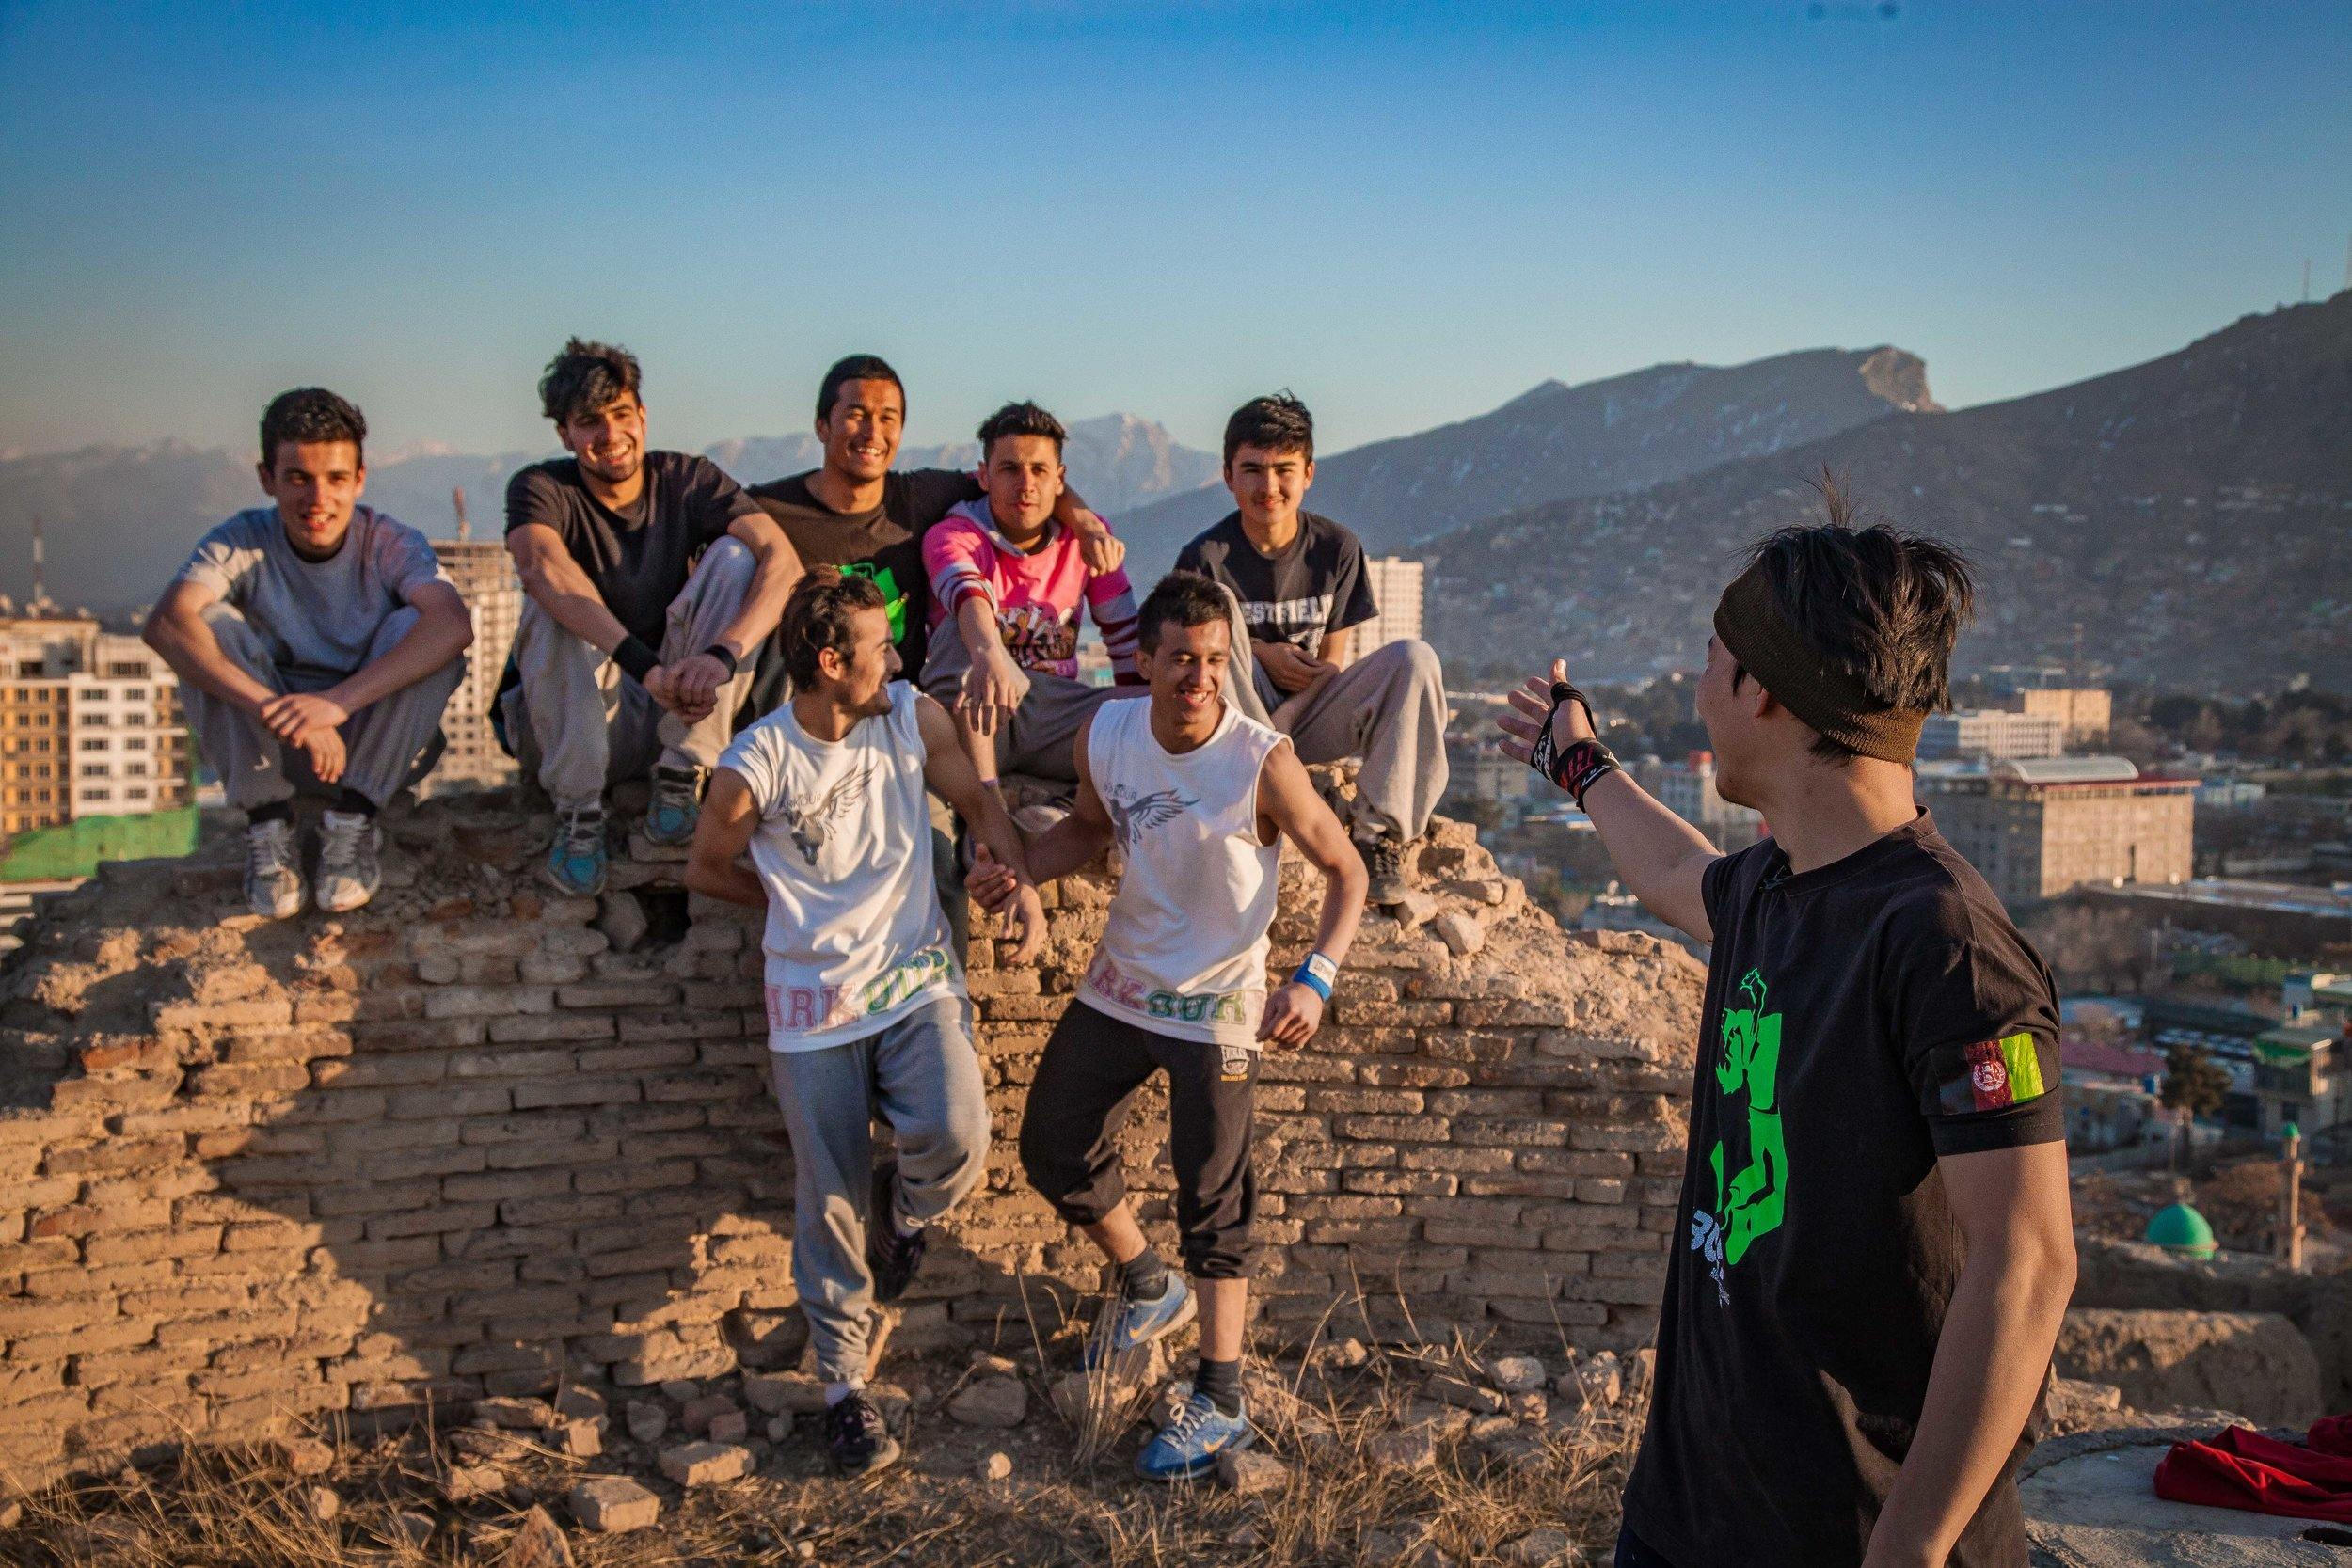 Jamil - leader of the 'Kabul Boys' Parkour team, hails his team as the driving force behind their recent success in achieving media coverage of their efforts.